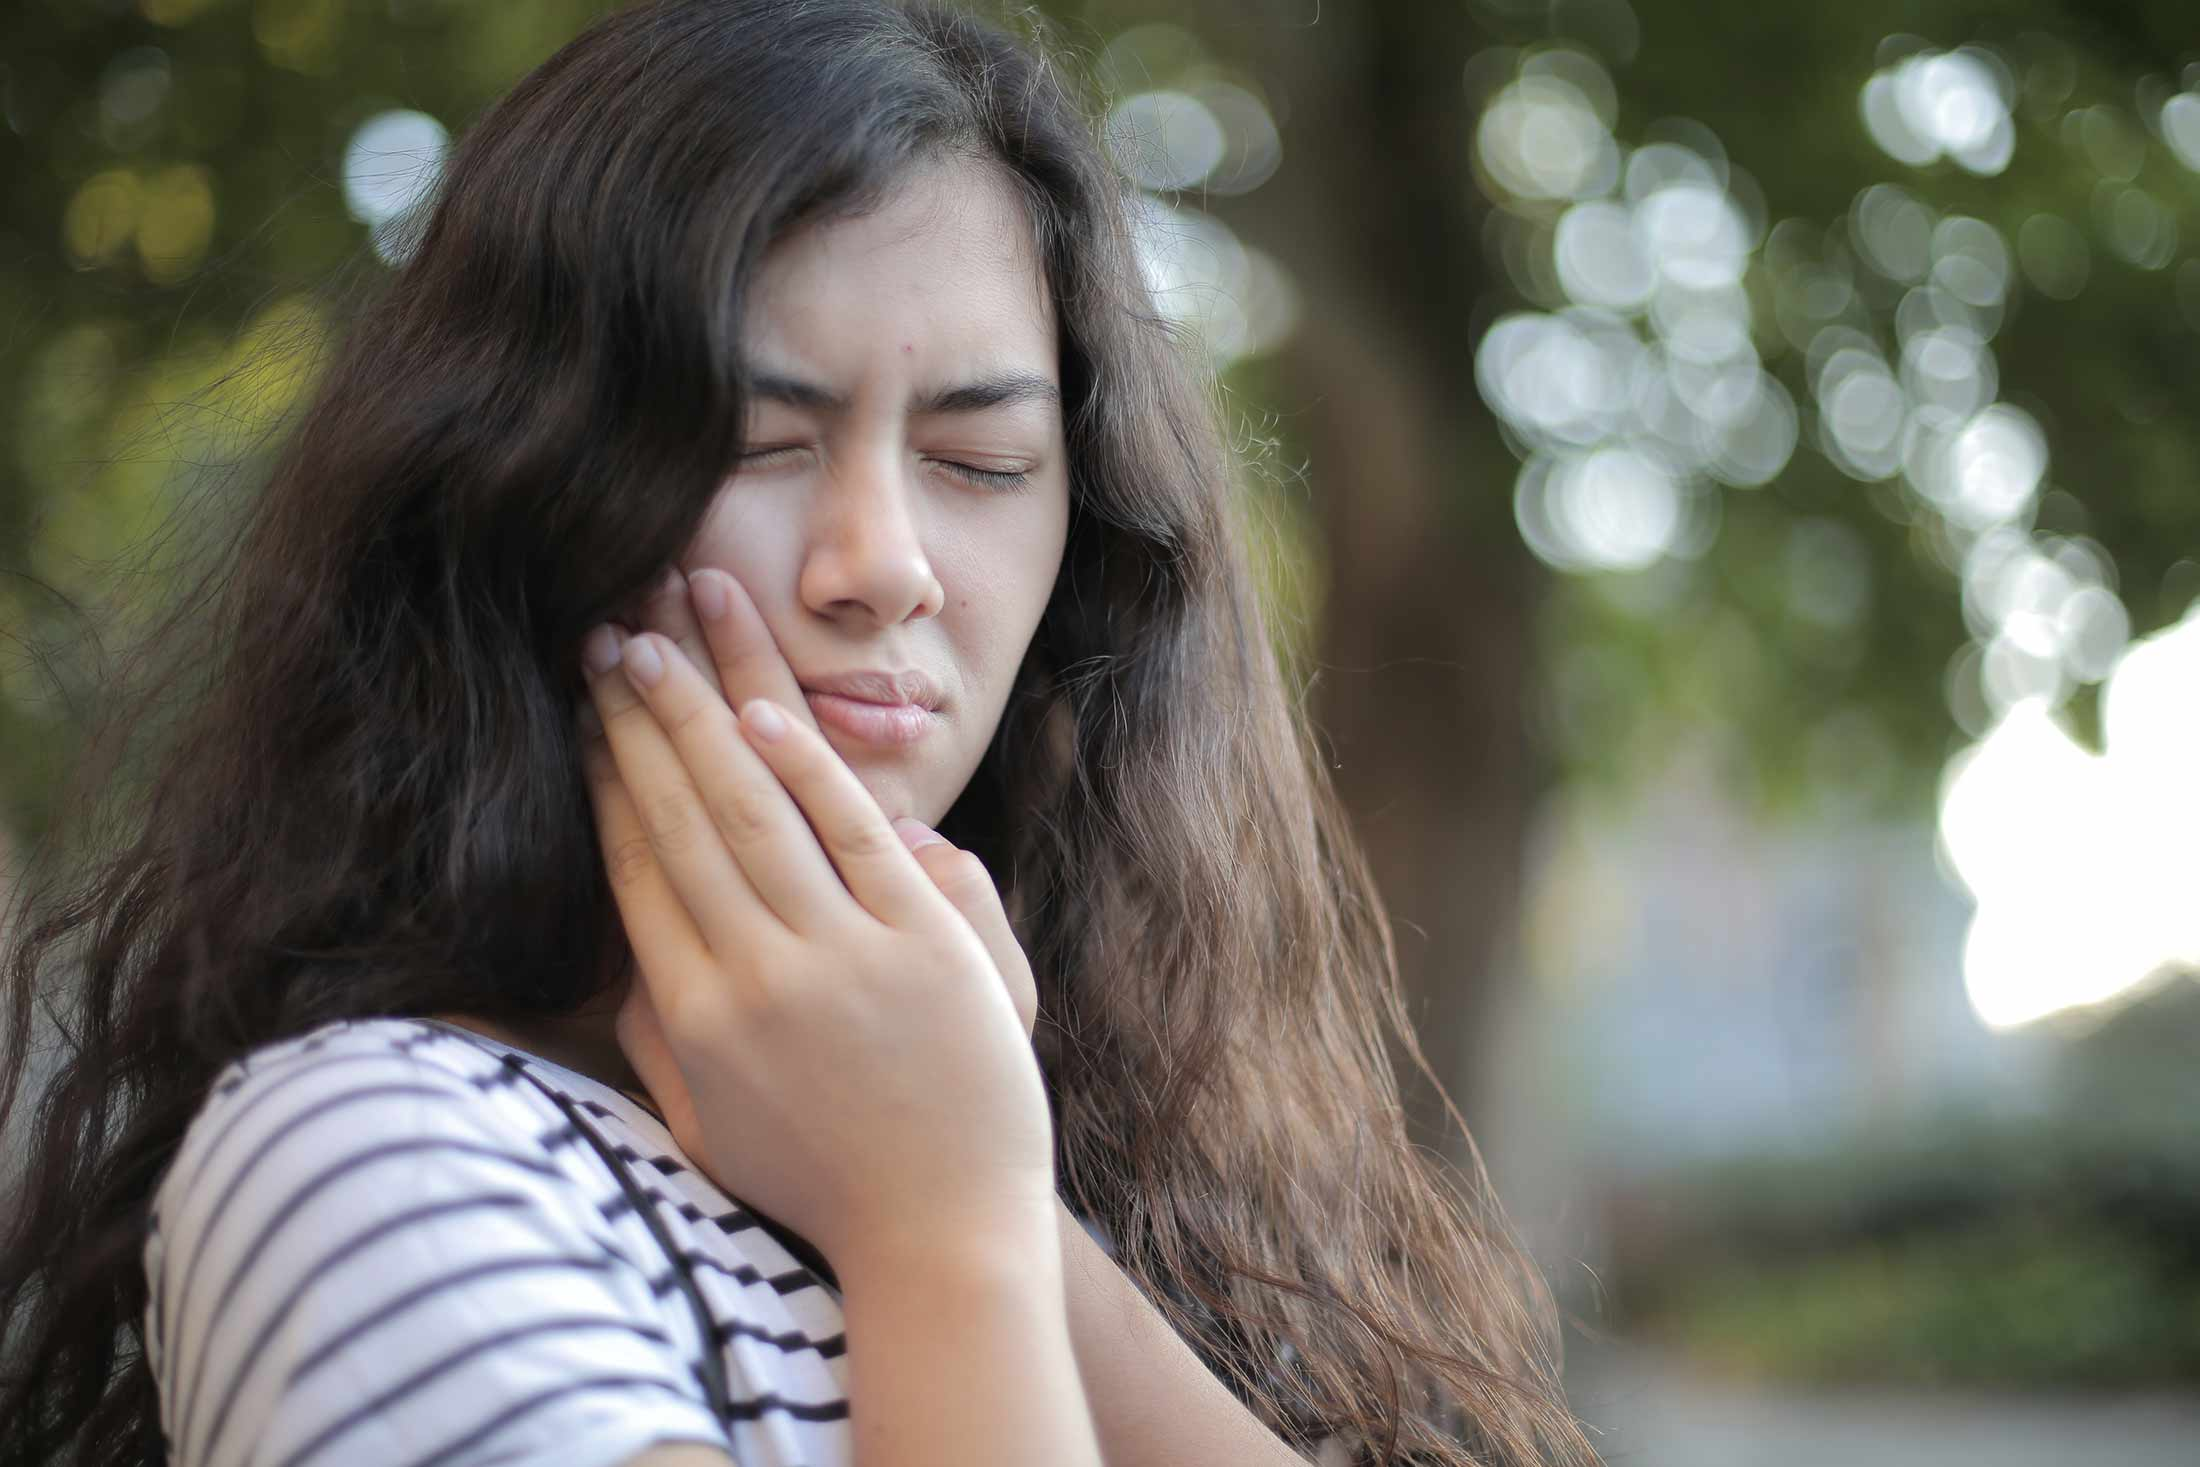 a young woman holds her jaw and looks to be in pain